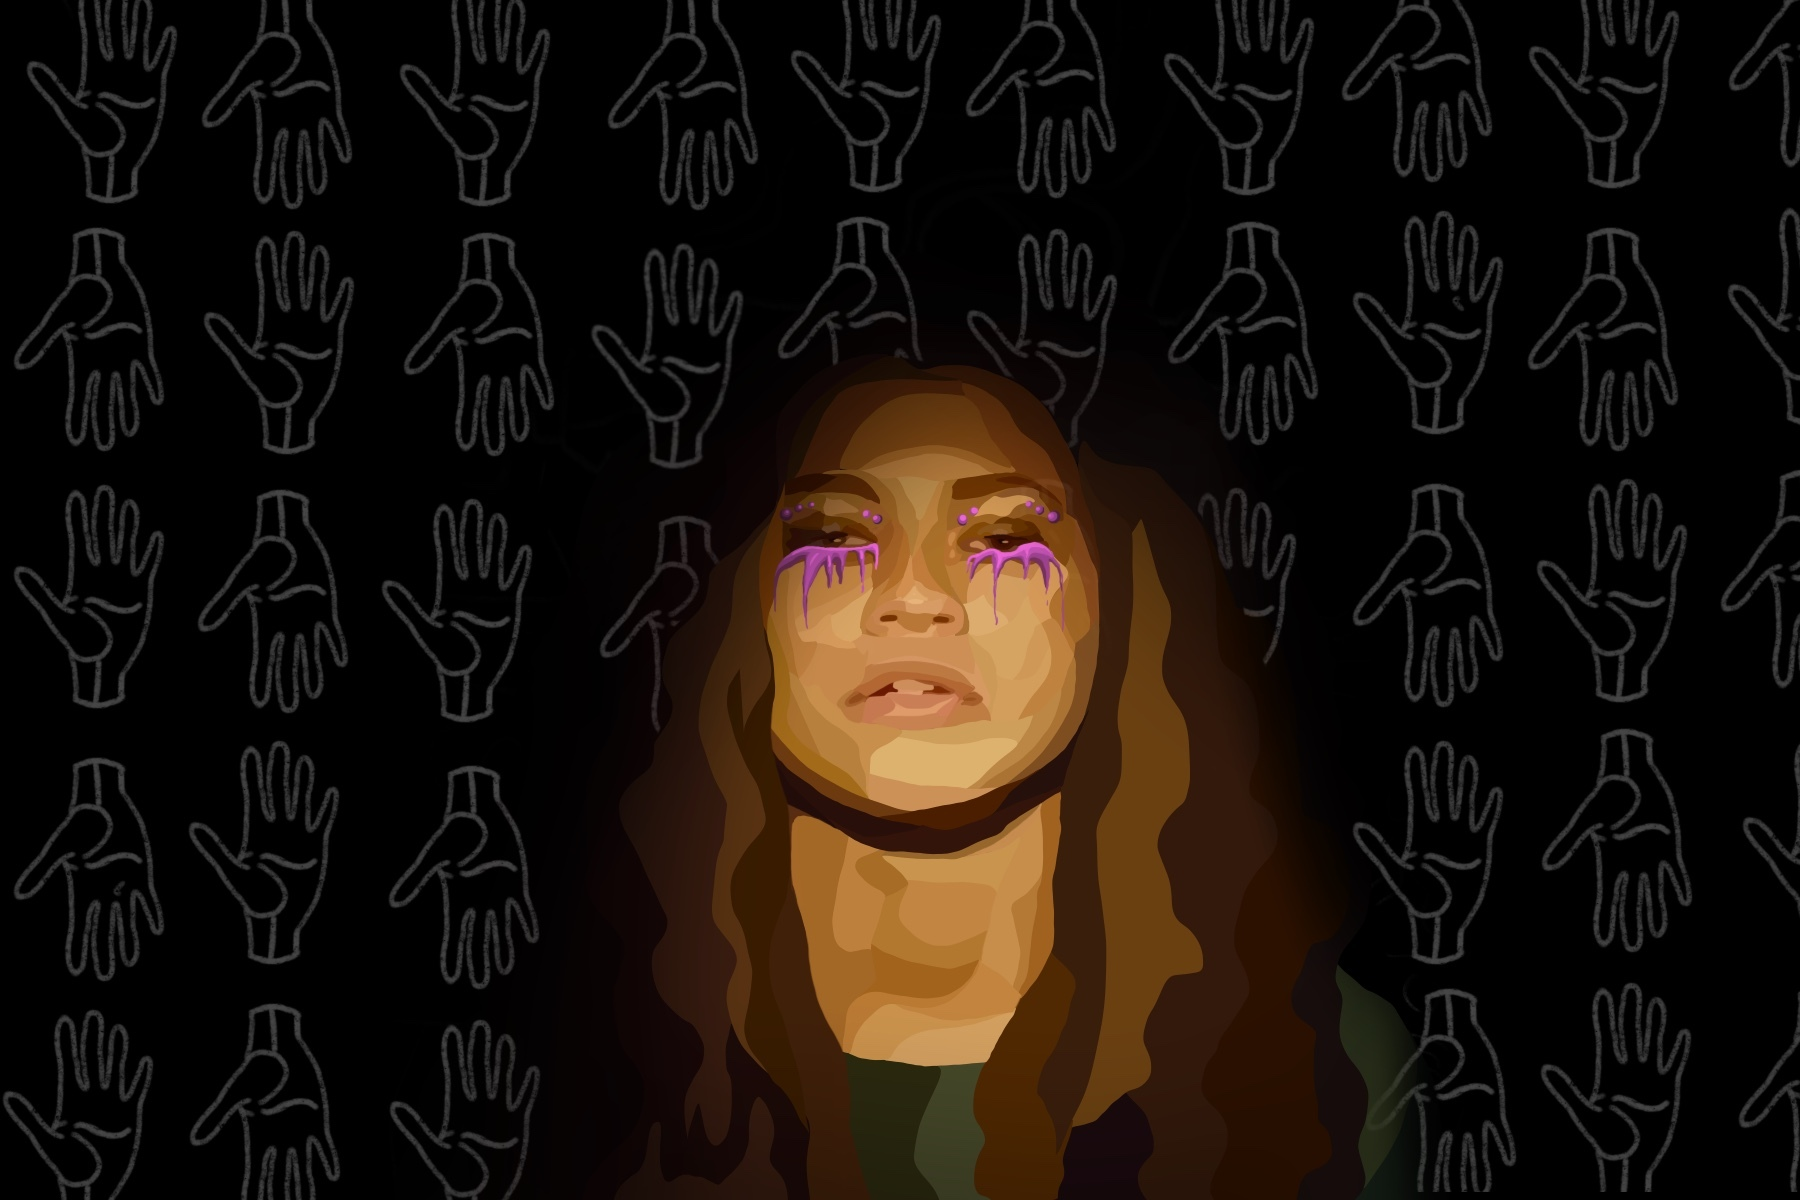 Zendaya from Euphoria in purple makeup against a black background